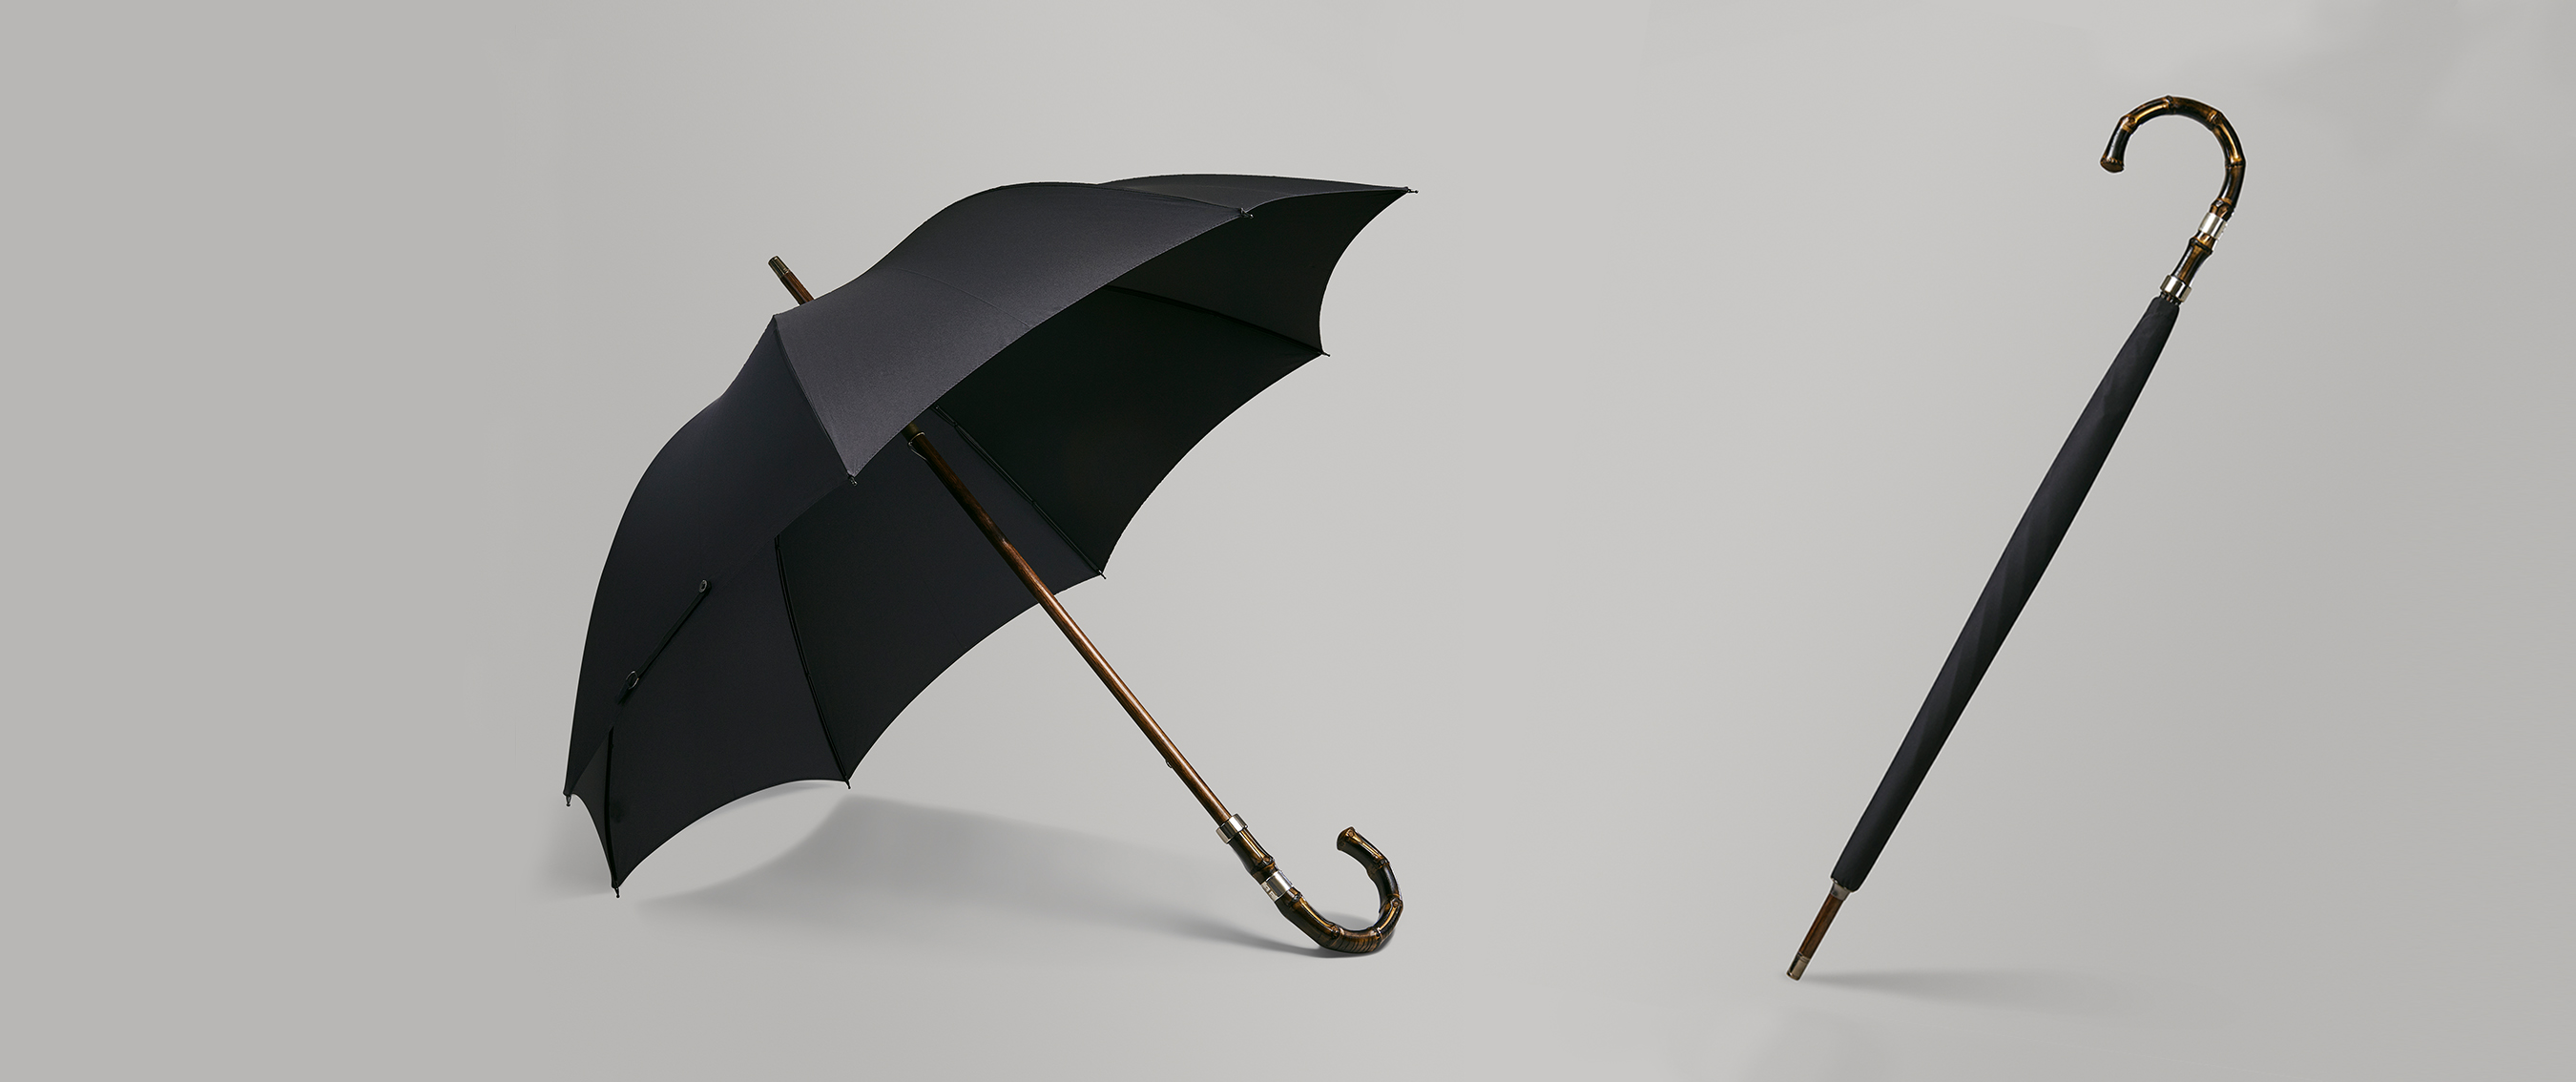 These umbrellas will fight spring showers in style | Gentleman's Journal